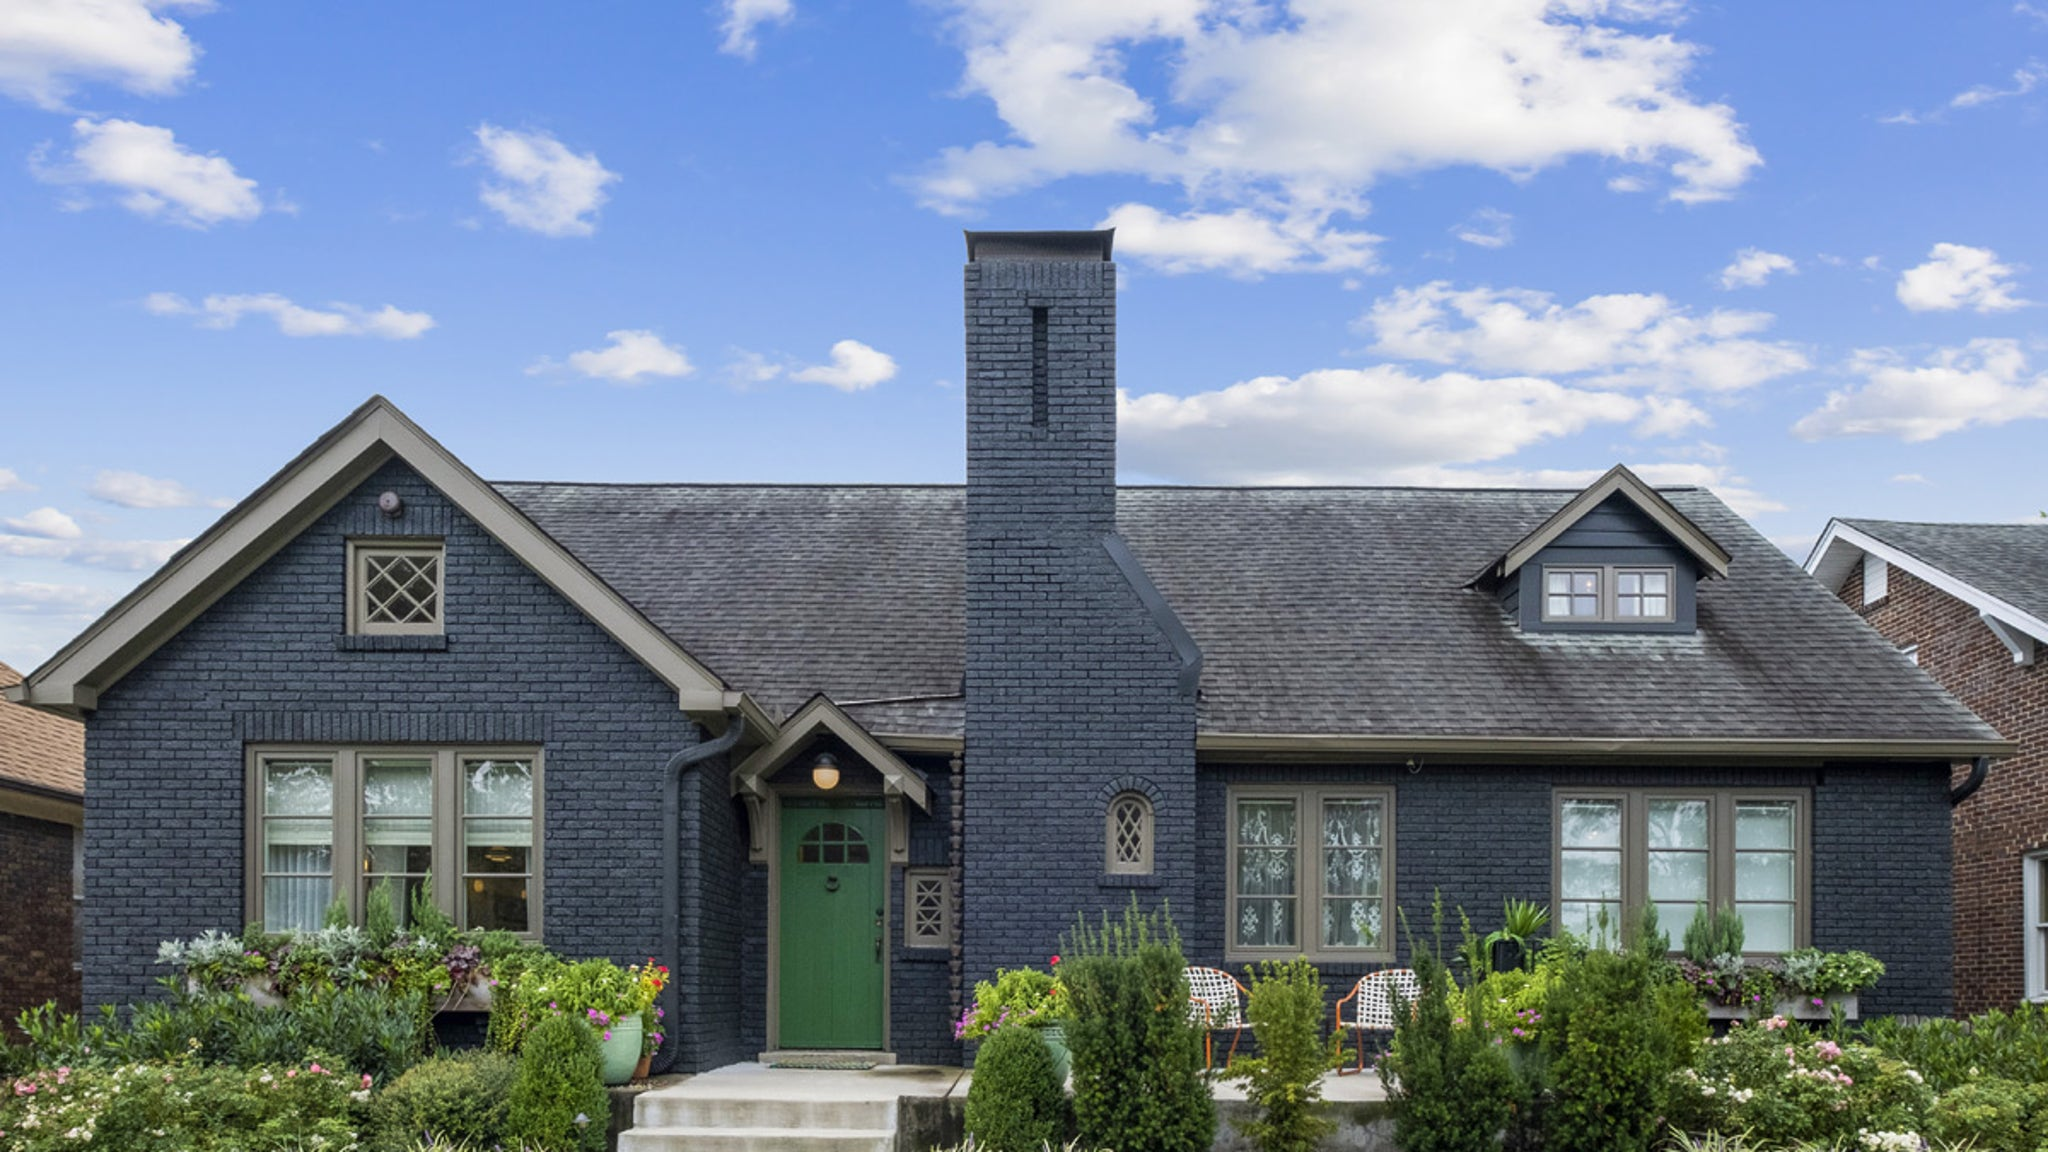 Hayley Williams Lists Nashville Home Where She Recorded Solo Album thumbnail